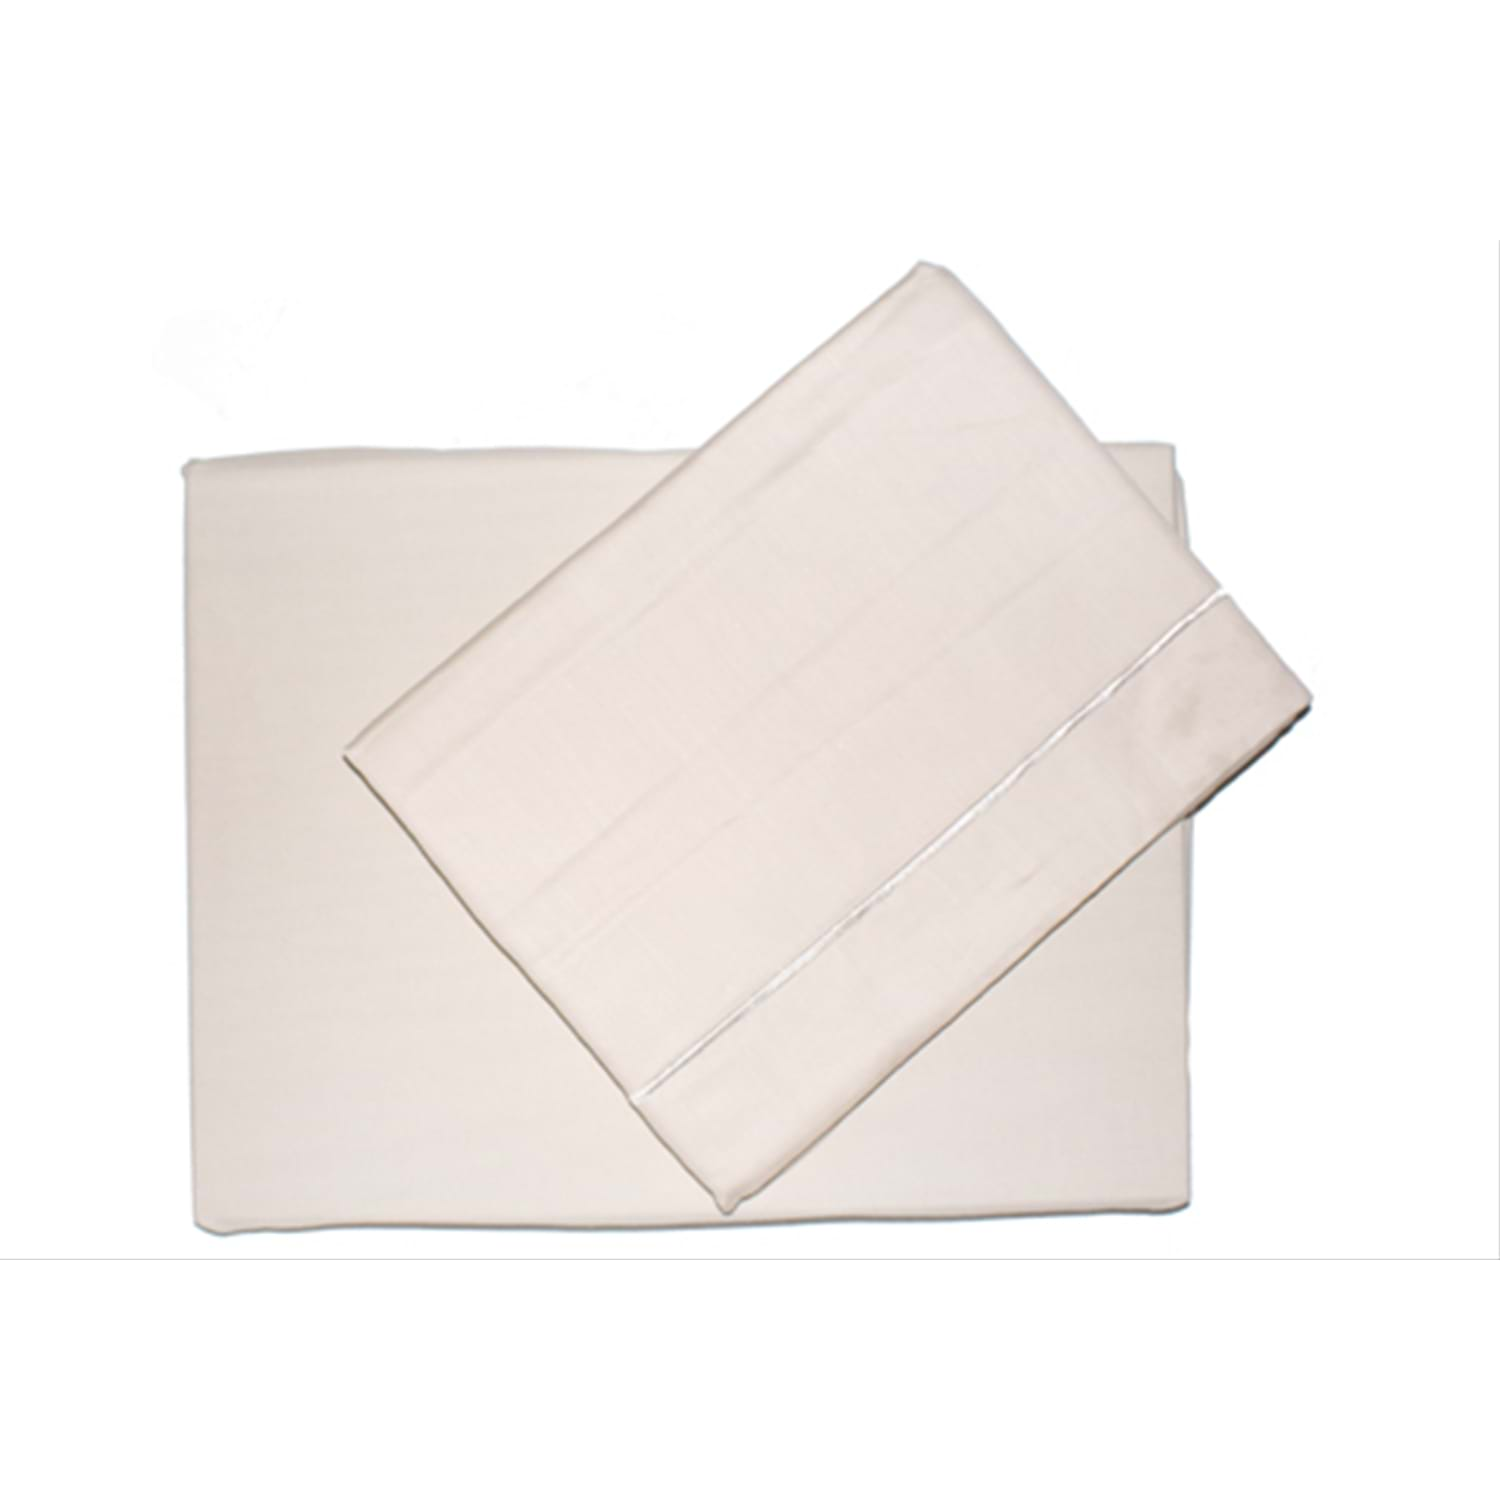 Image of Belledorm 200 Thread Count Extra Deep Fitted Sheet, Super King, Cream